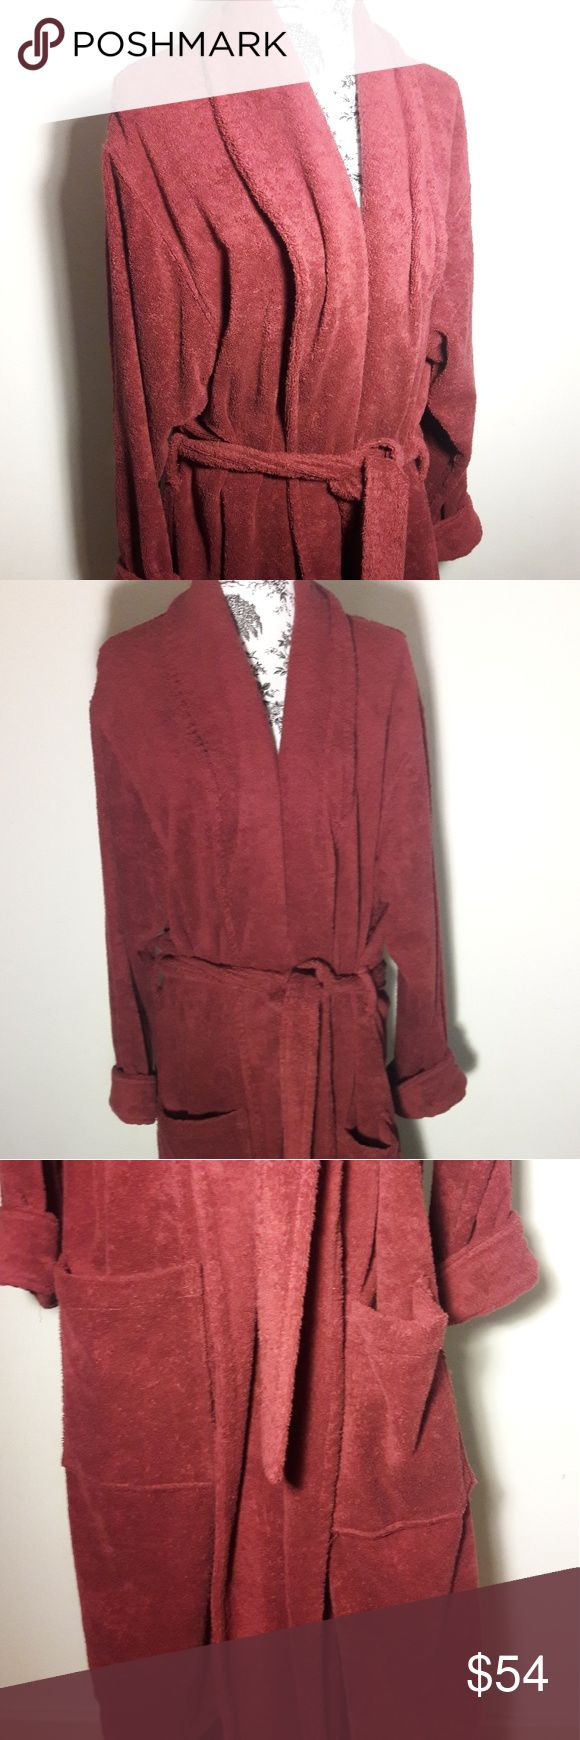 LL Bean Mens Thick Yerry Cloth Robe Size Large LL BEAN   Men's Robe Size Large 100% THICK COTTON TERRY Bathrobe. Nice Cozy & Warm. A Must Have!   Details:  Shawl Collar  Long Sleeve 2 Front Pockets Men's Size Large Full Length, Long Full Length Tie Belt  Thick, Warm and Absorbent  Pre-owned in Excellent condition Please be sure to view all images  Thank you for Looking & Sharing Happy Poshing😄 L.L. Bean Other